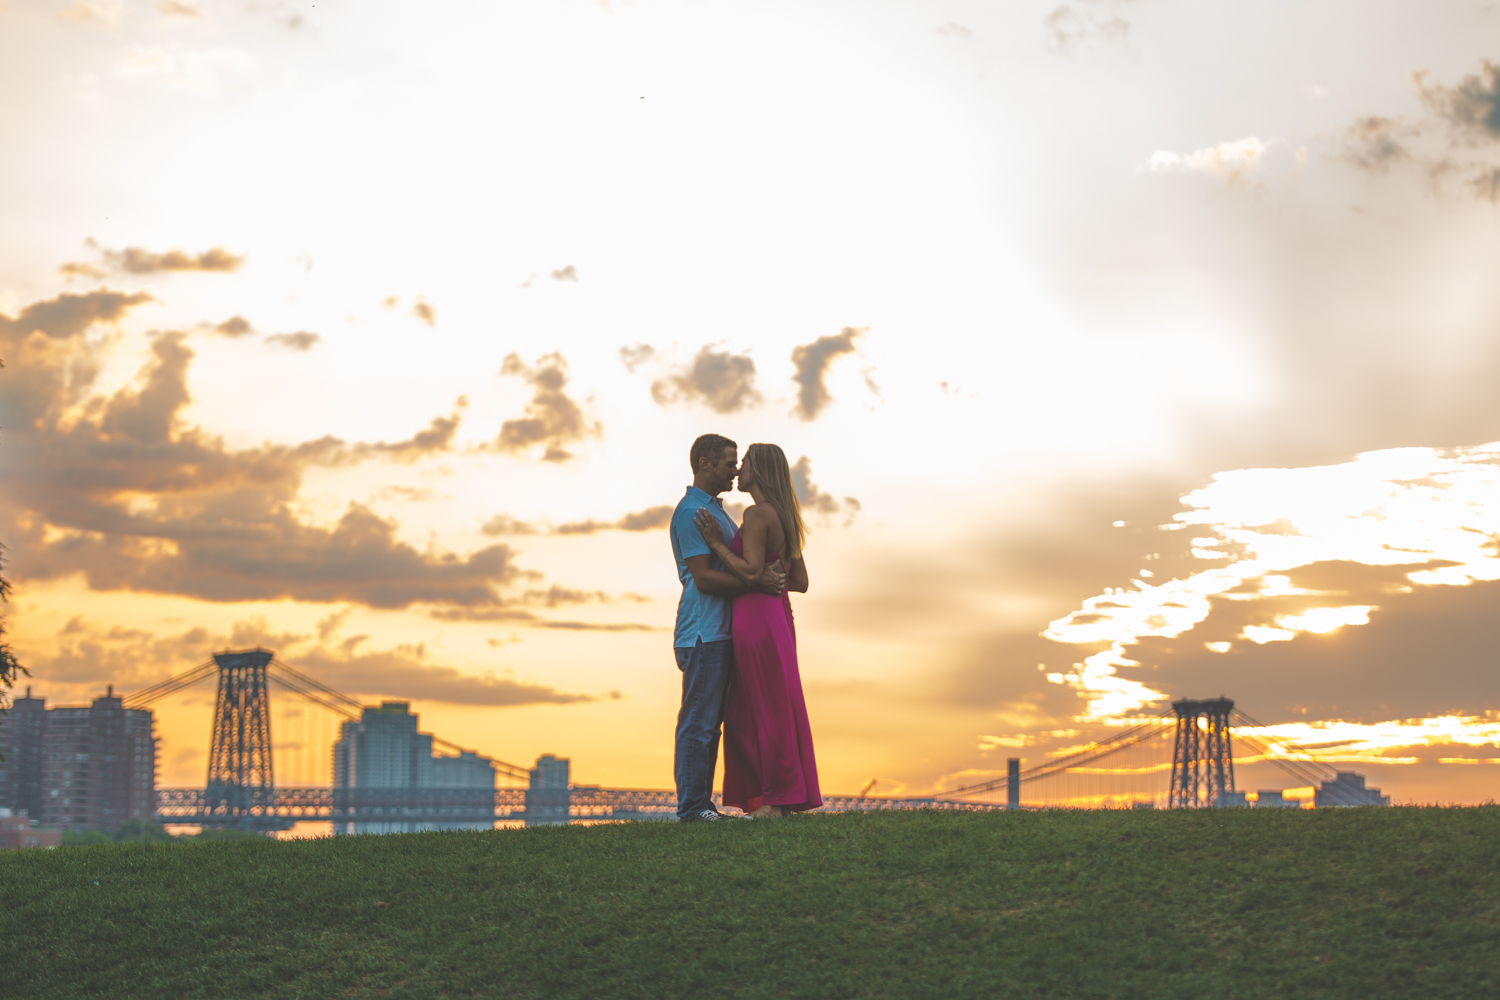 amazing-sunrise-engagement-photography-brooklyn-bridge-dumbo-11.jpg